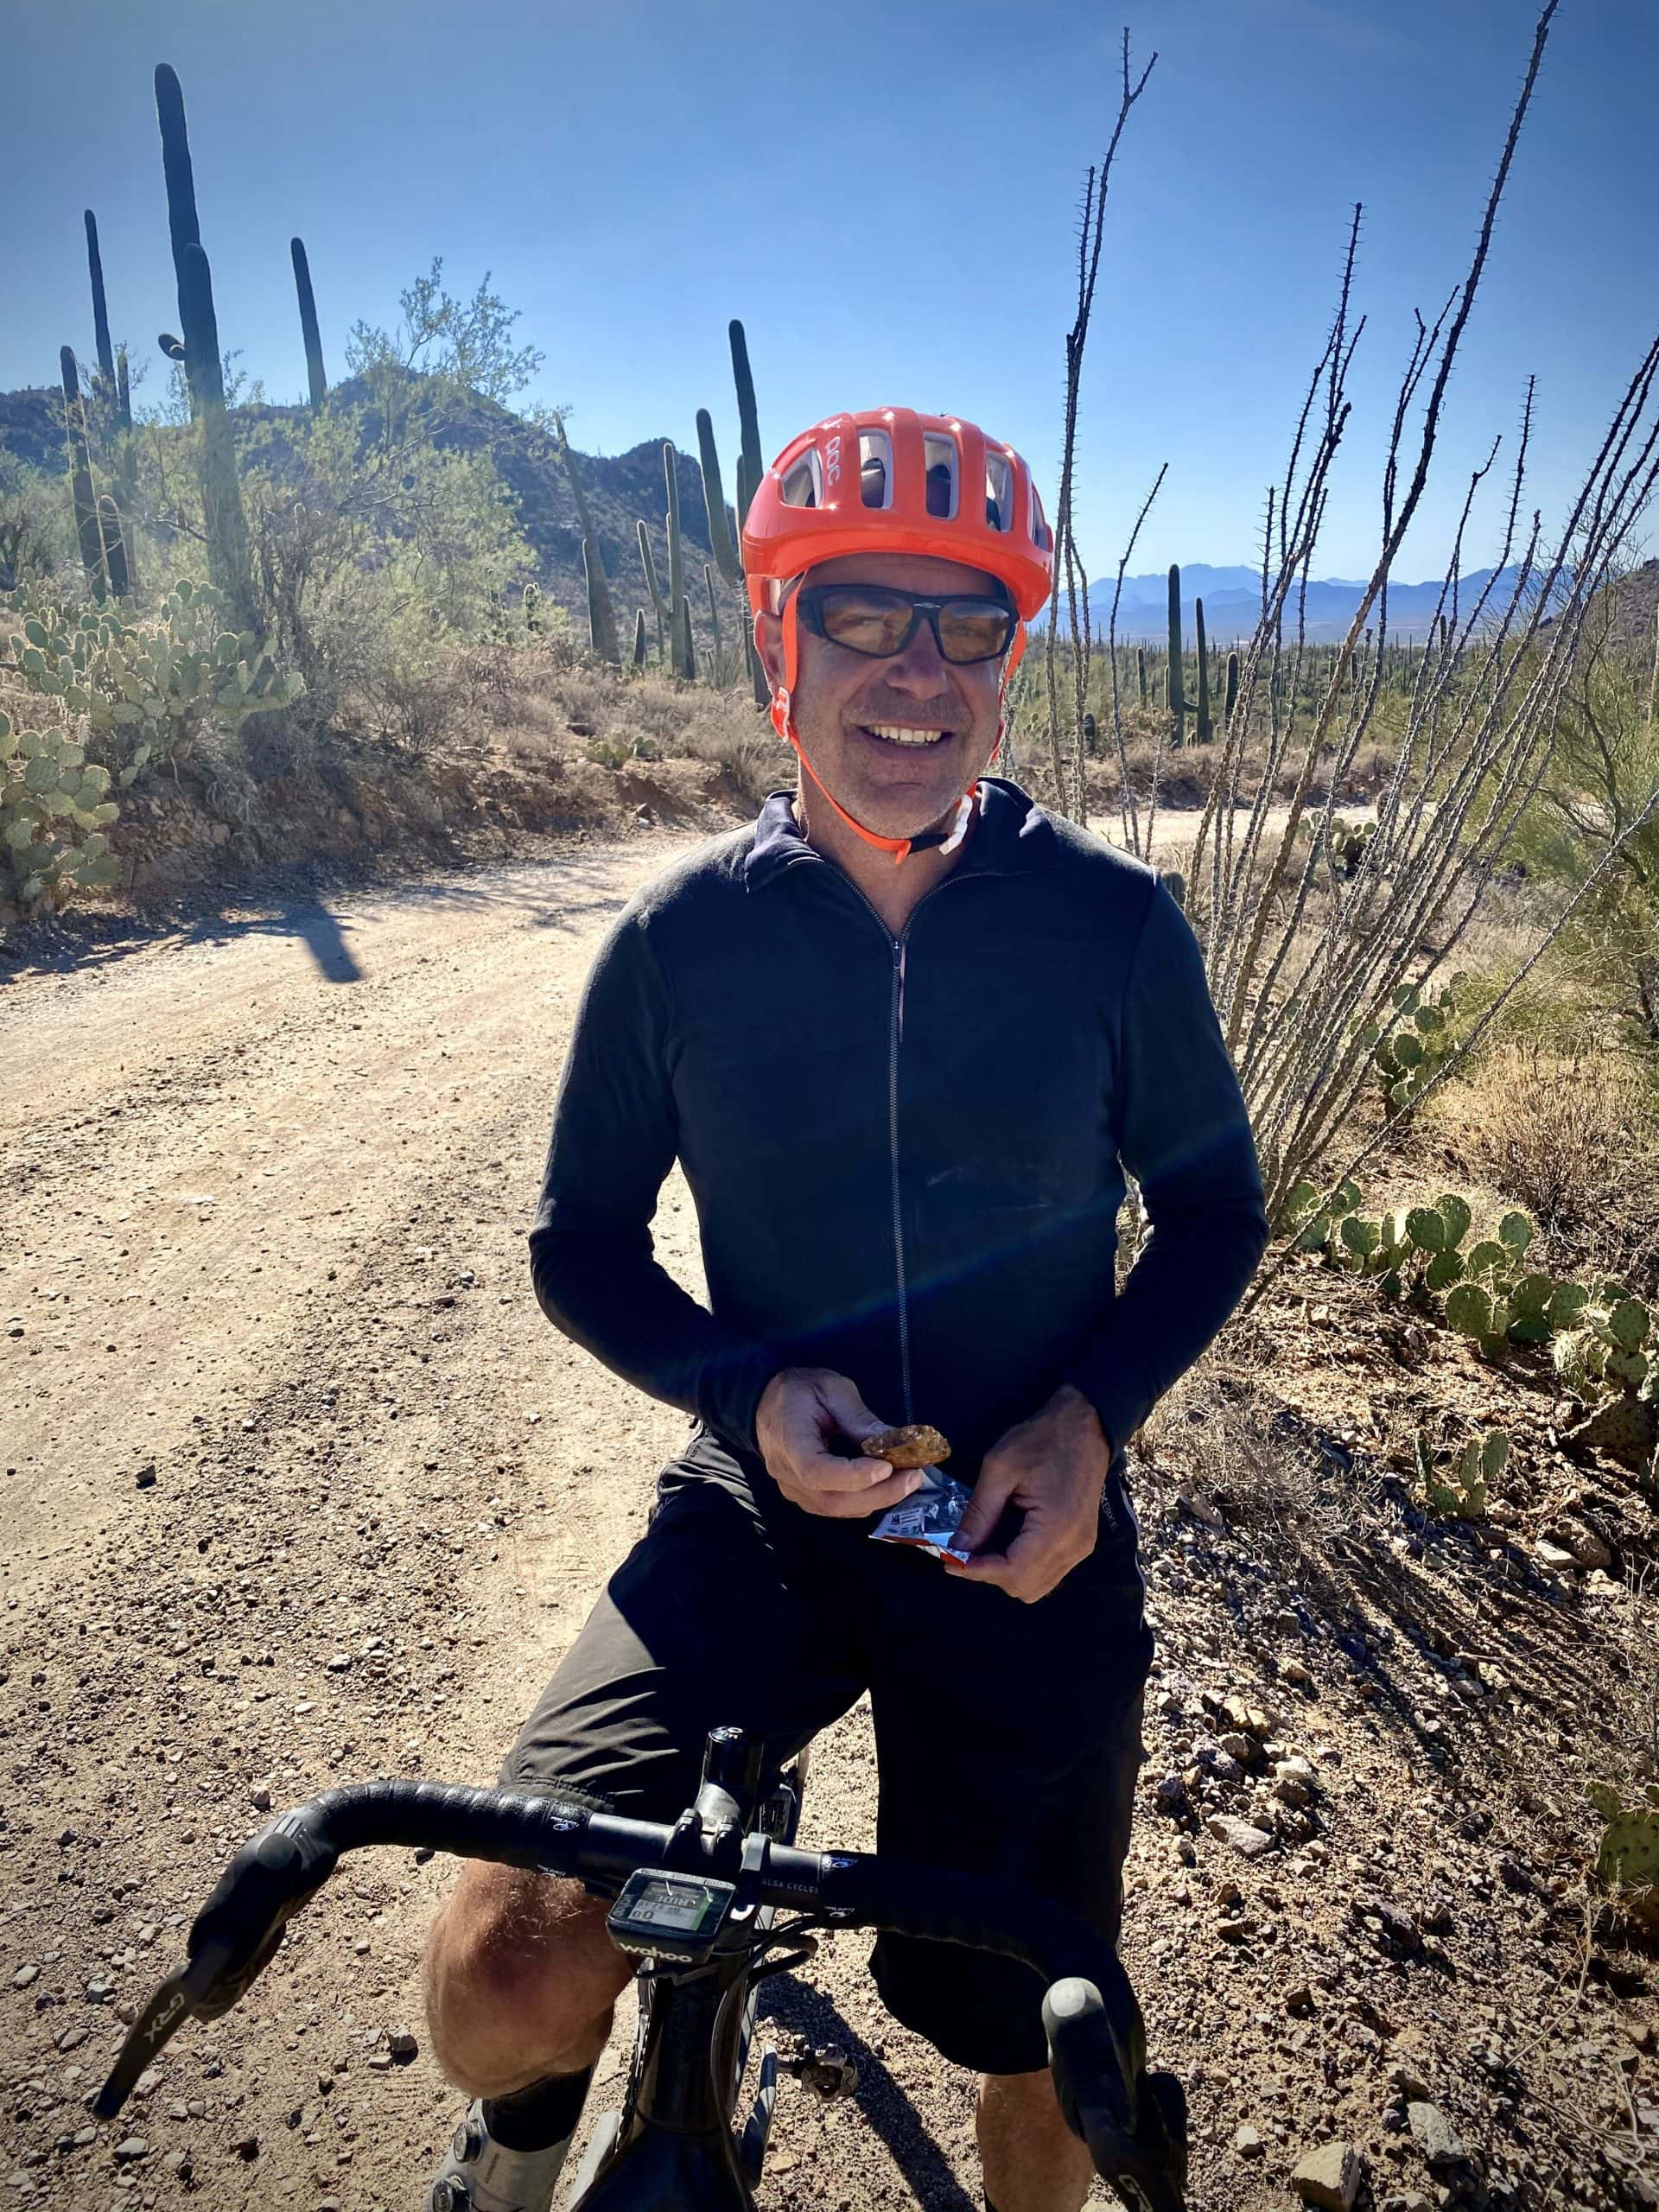 Captain O getting a bite to eat on his gravel bike in Saguaro National park.